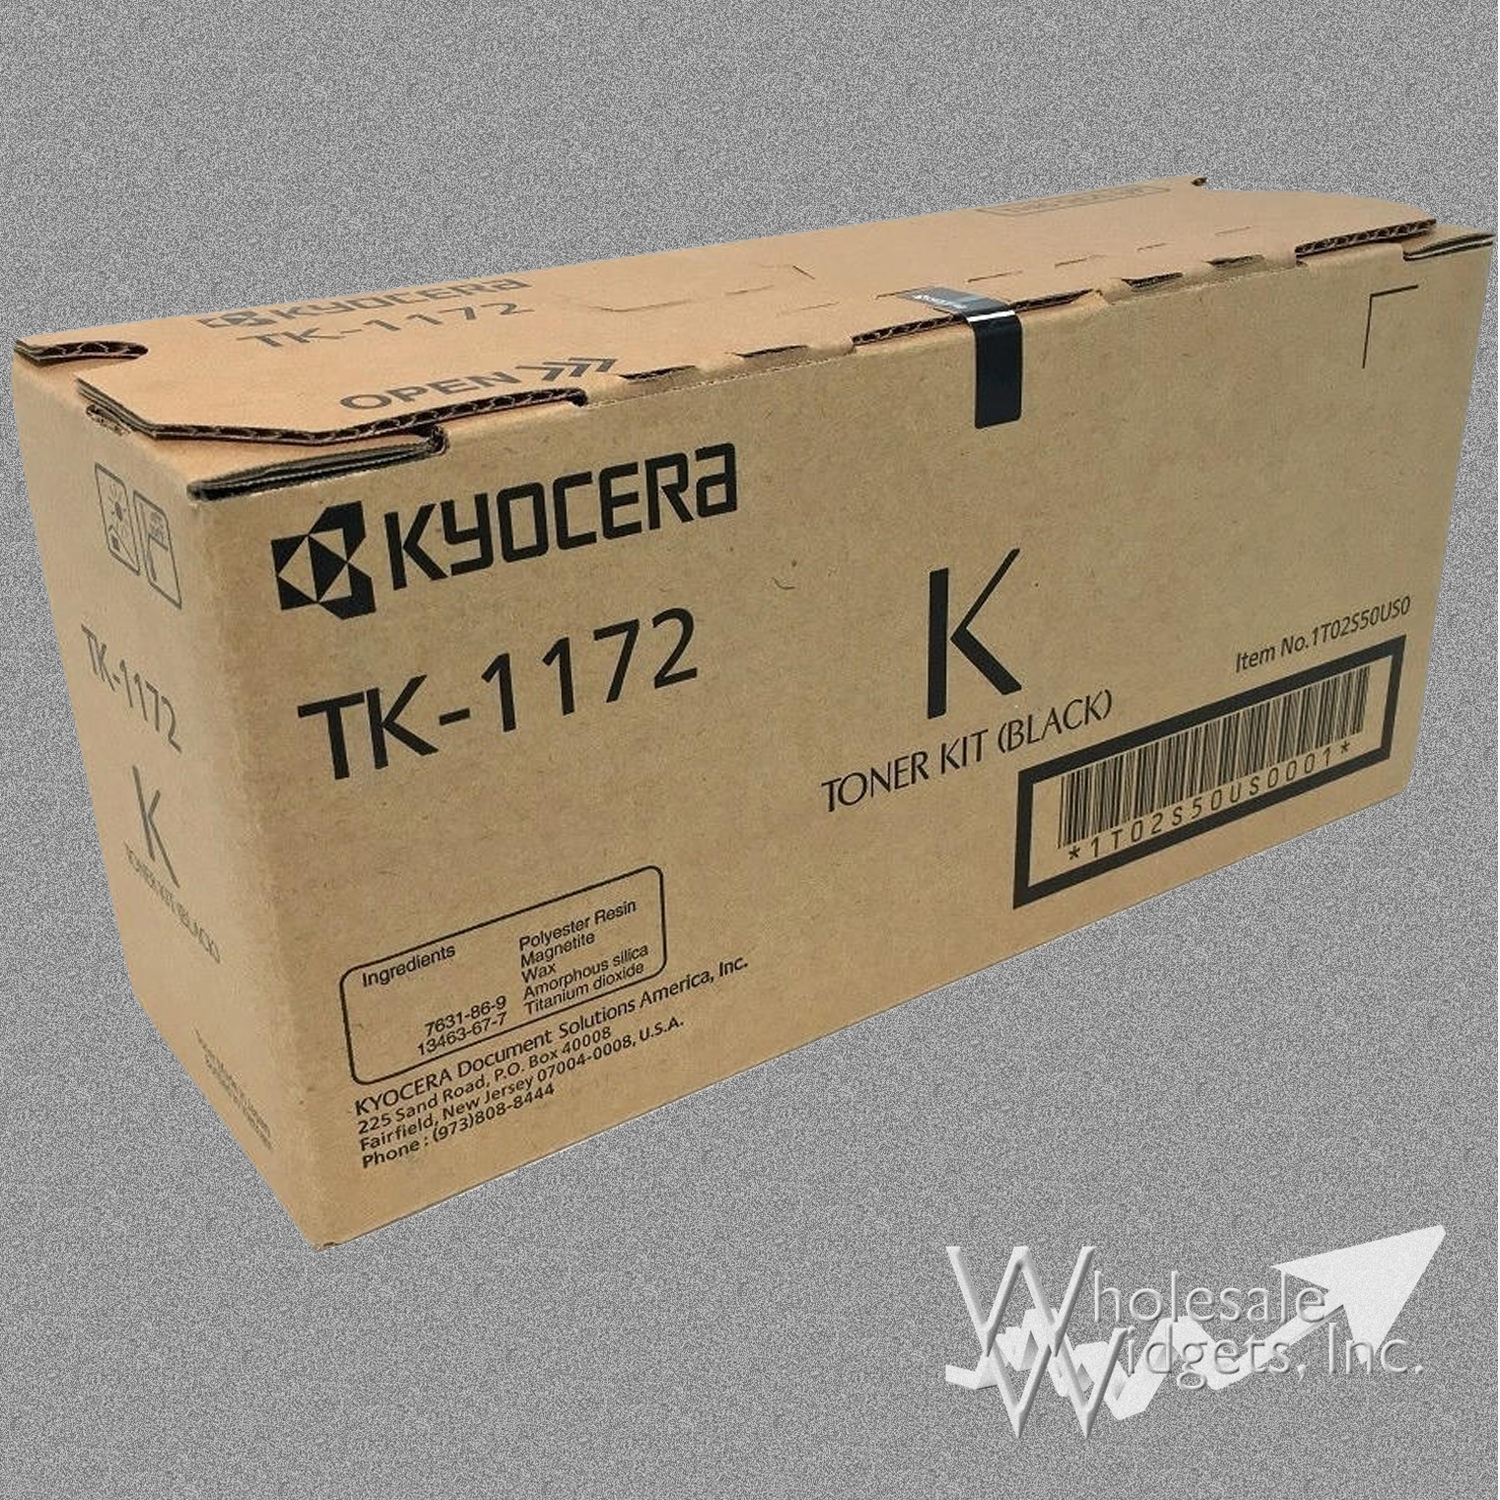 Kyocera Tk1172 Black Toner M 2040 Dn For Use In Ecosys M2040dn M2540dw M2640idw 1t02s50us0 Tk 1172